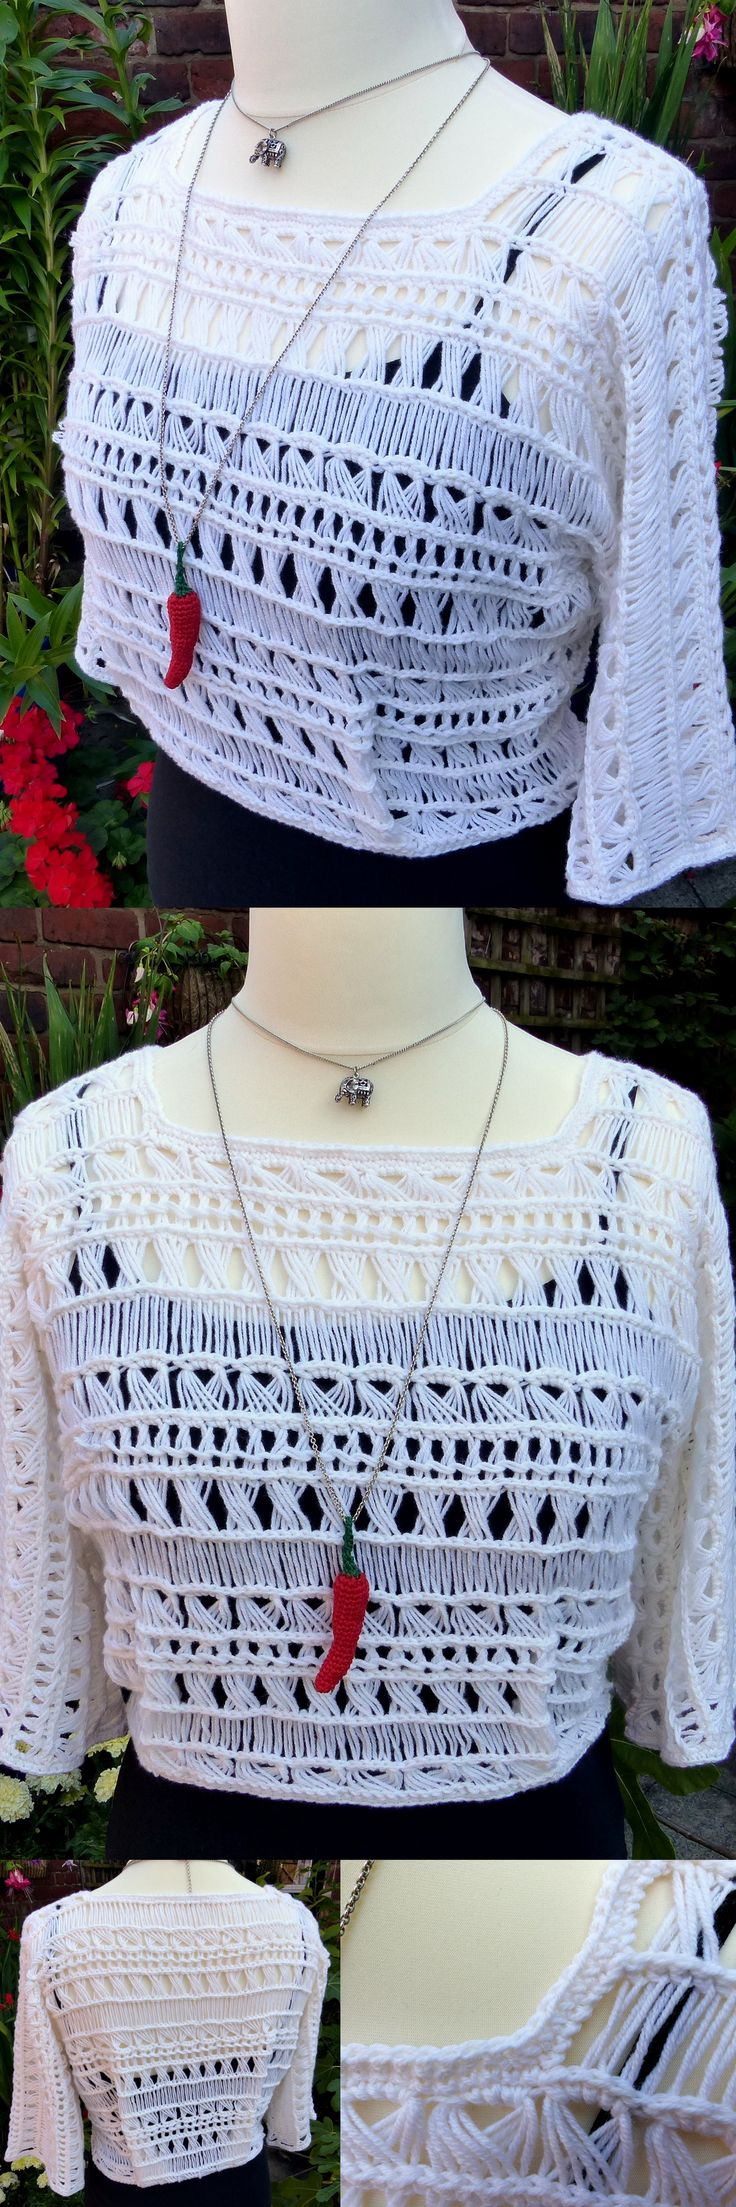 Indian Summer Lace Top – free crochet pattern from Make My Day Creative - so fast and easy!